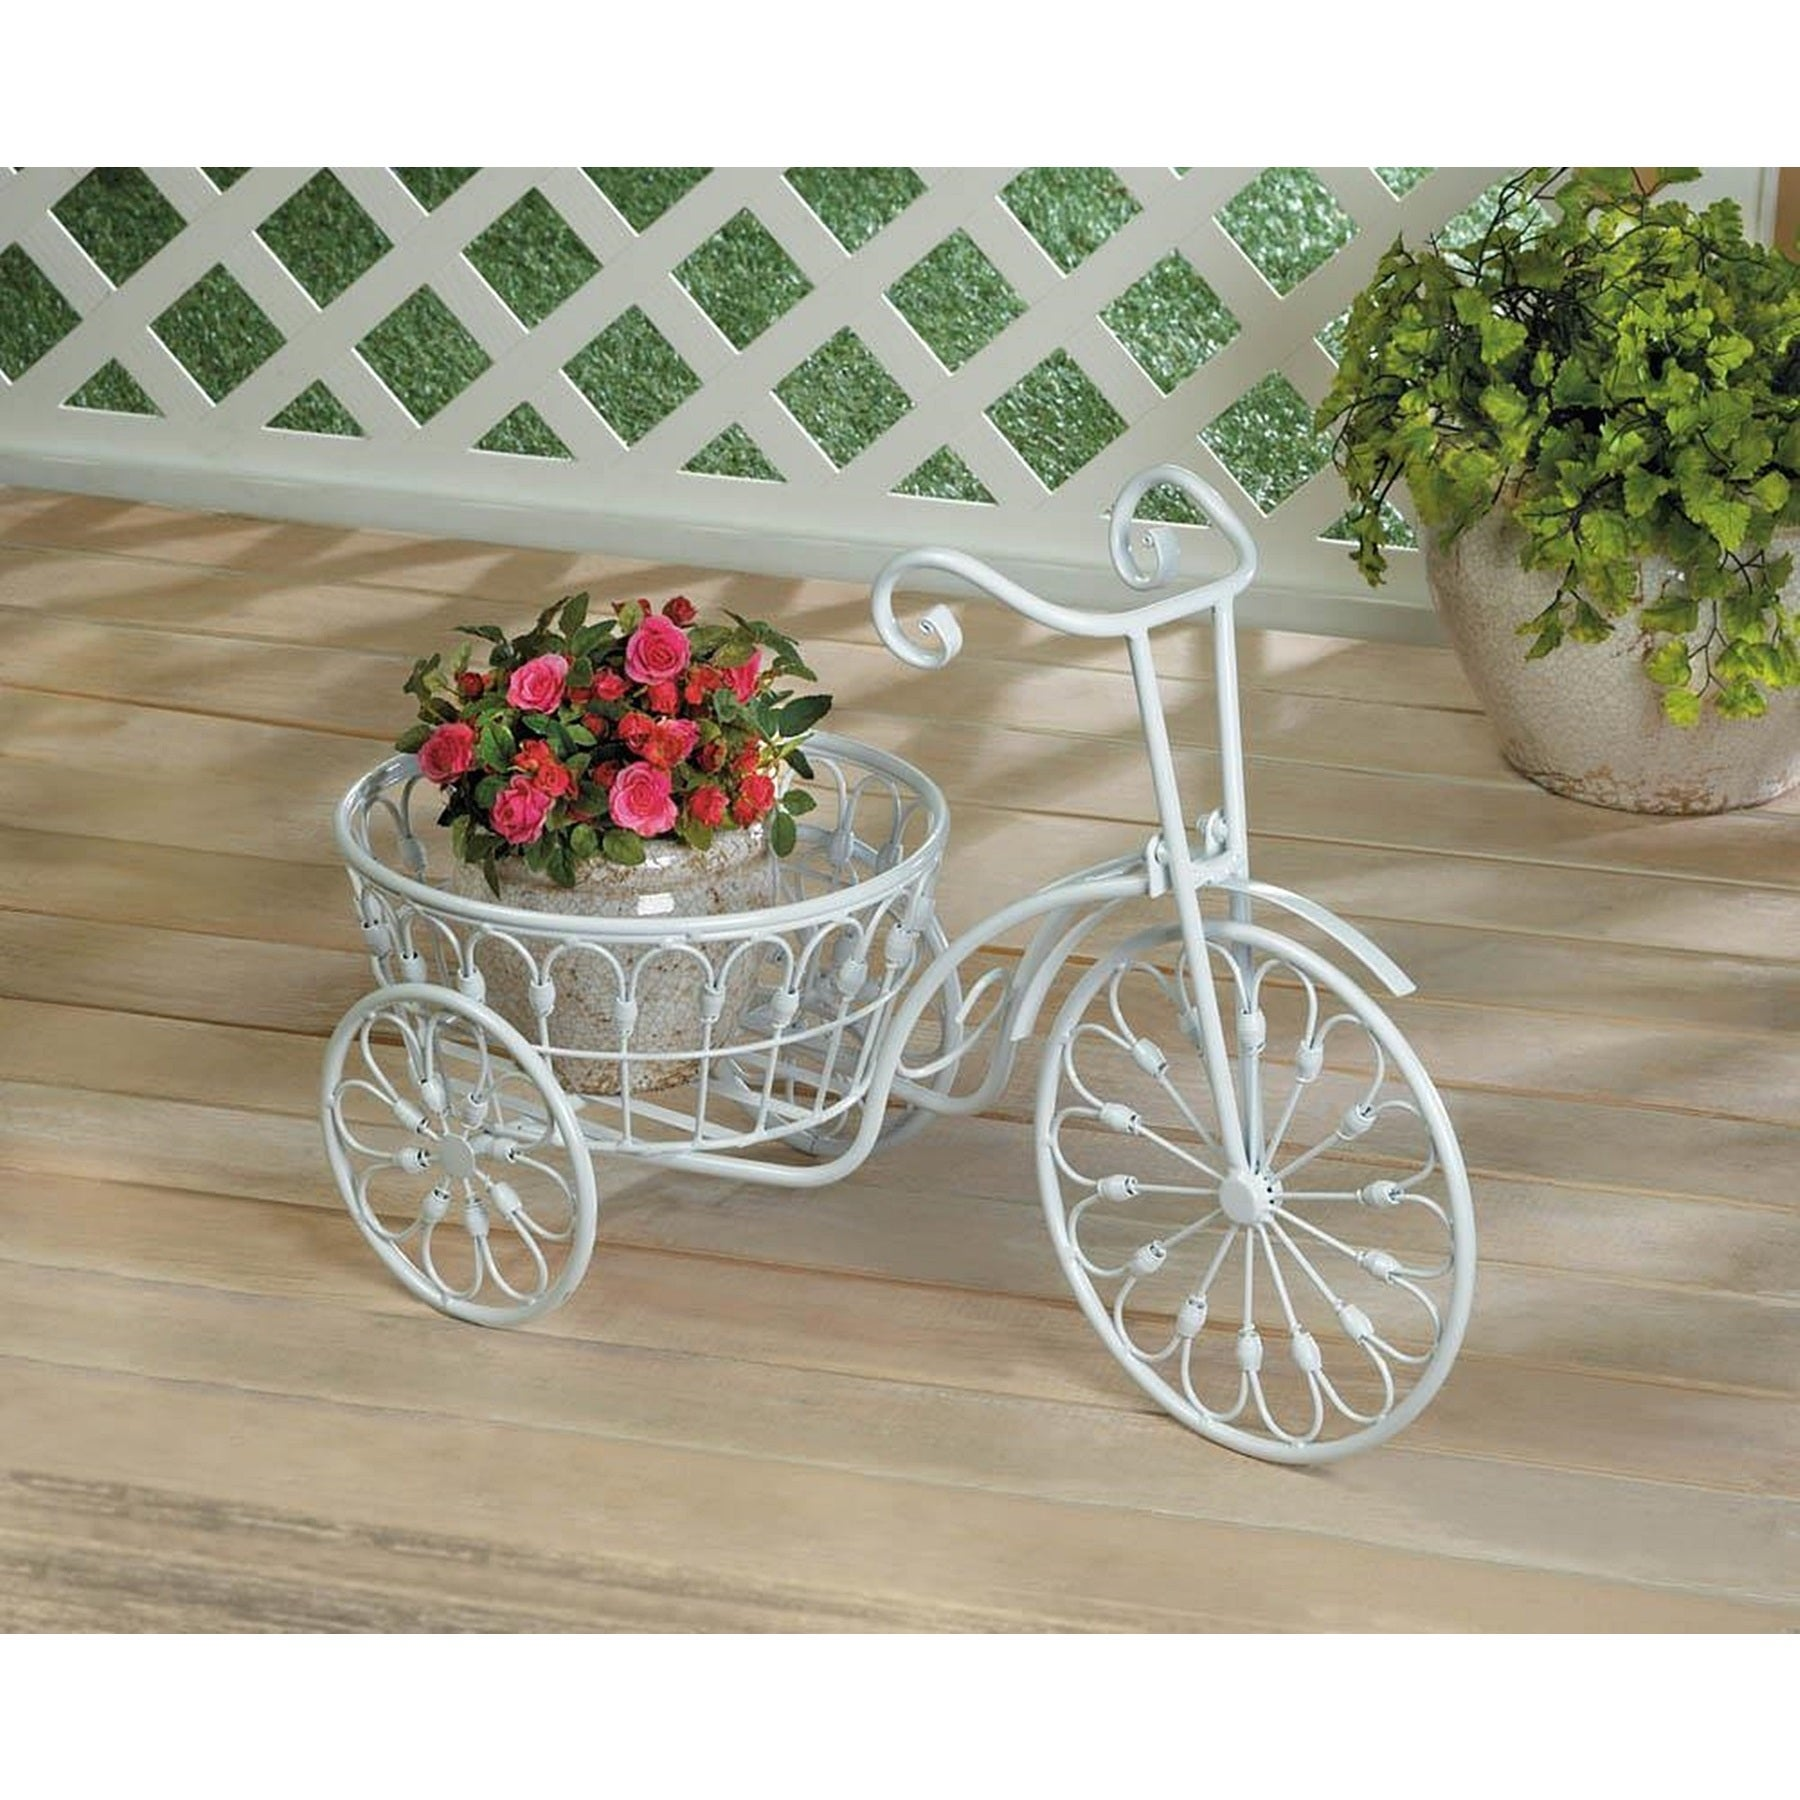 Vintage Style Bicycle Flower Holder, White (Iron) #BSD-62...